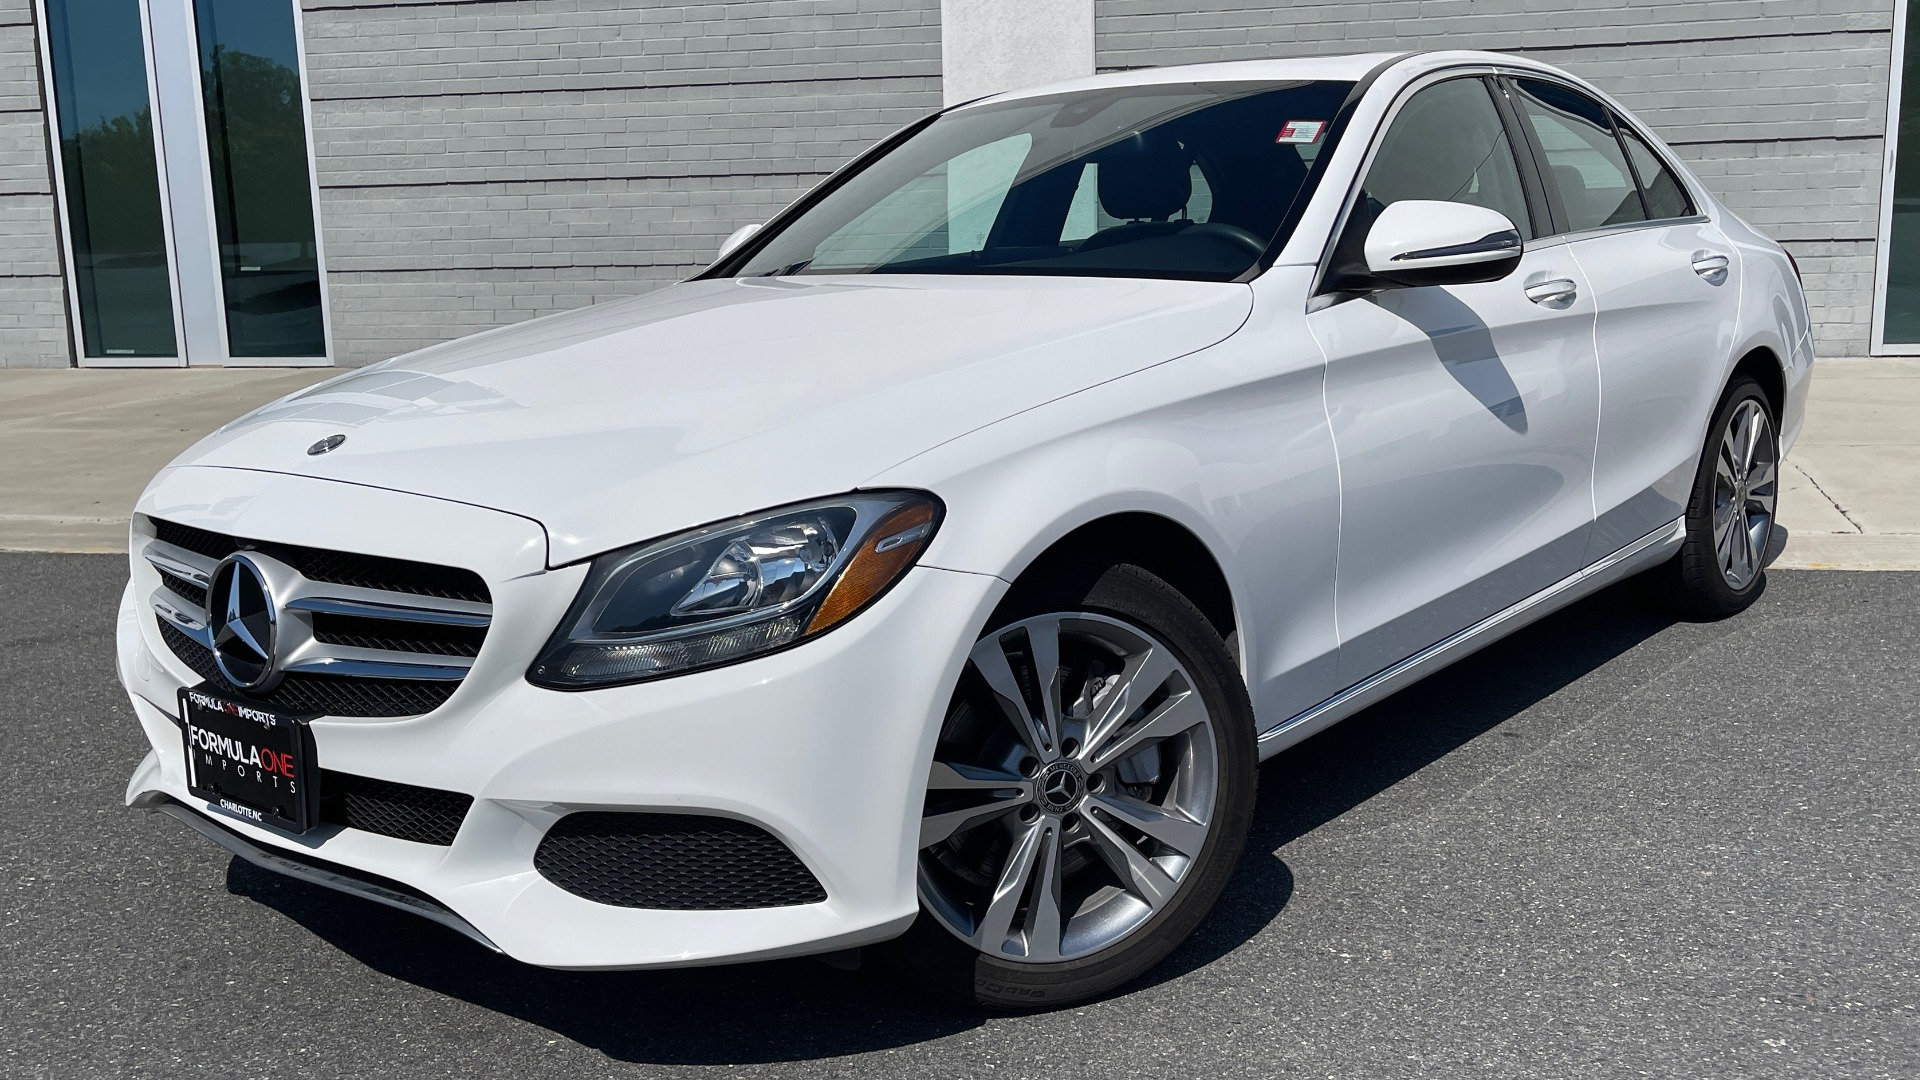 Used 2018 Mercedes-Benz C-CLASS C 300 PREMIUM / APPLE CARPLAY / KEYLESS-GO / SUNROOF / REARVIEW for sale $32,995 at Formula Imports in Charlotte NC 28227 1